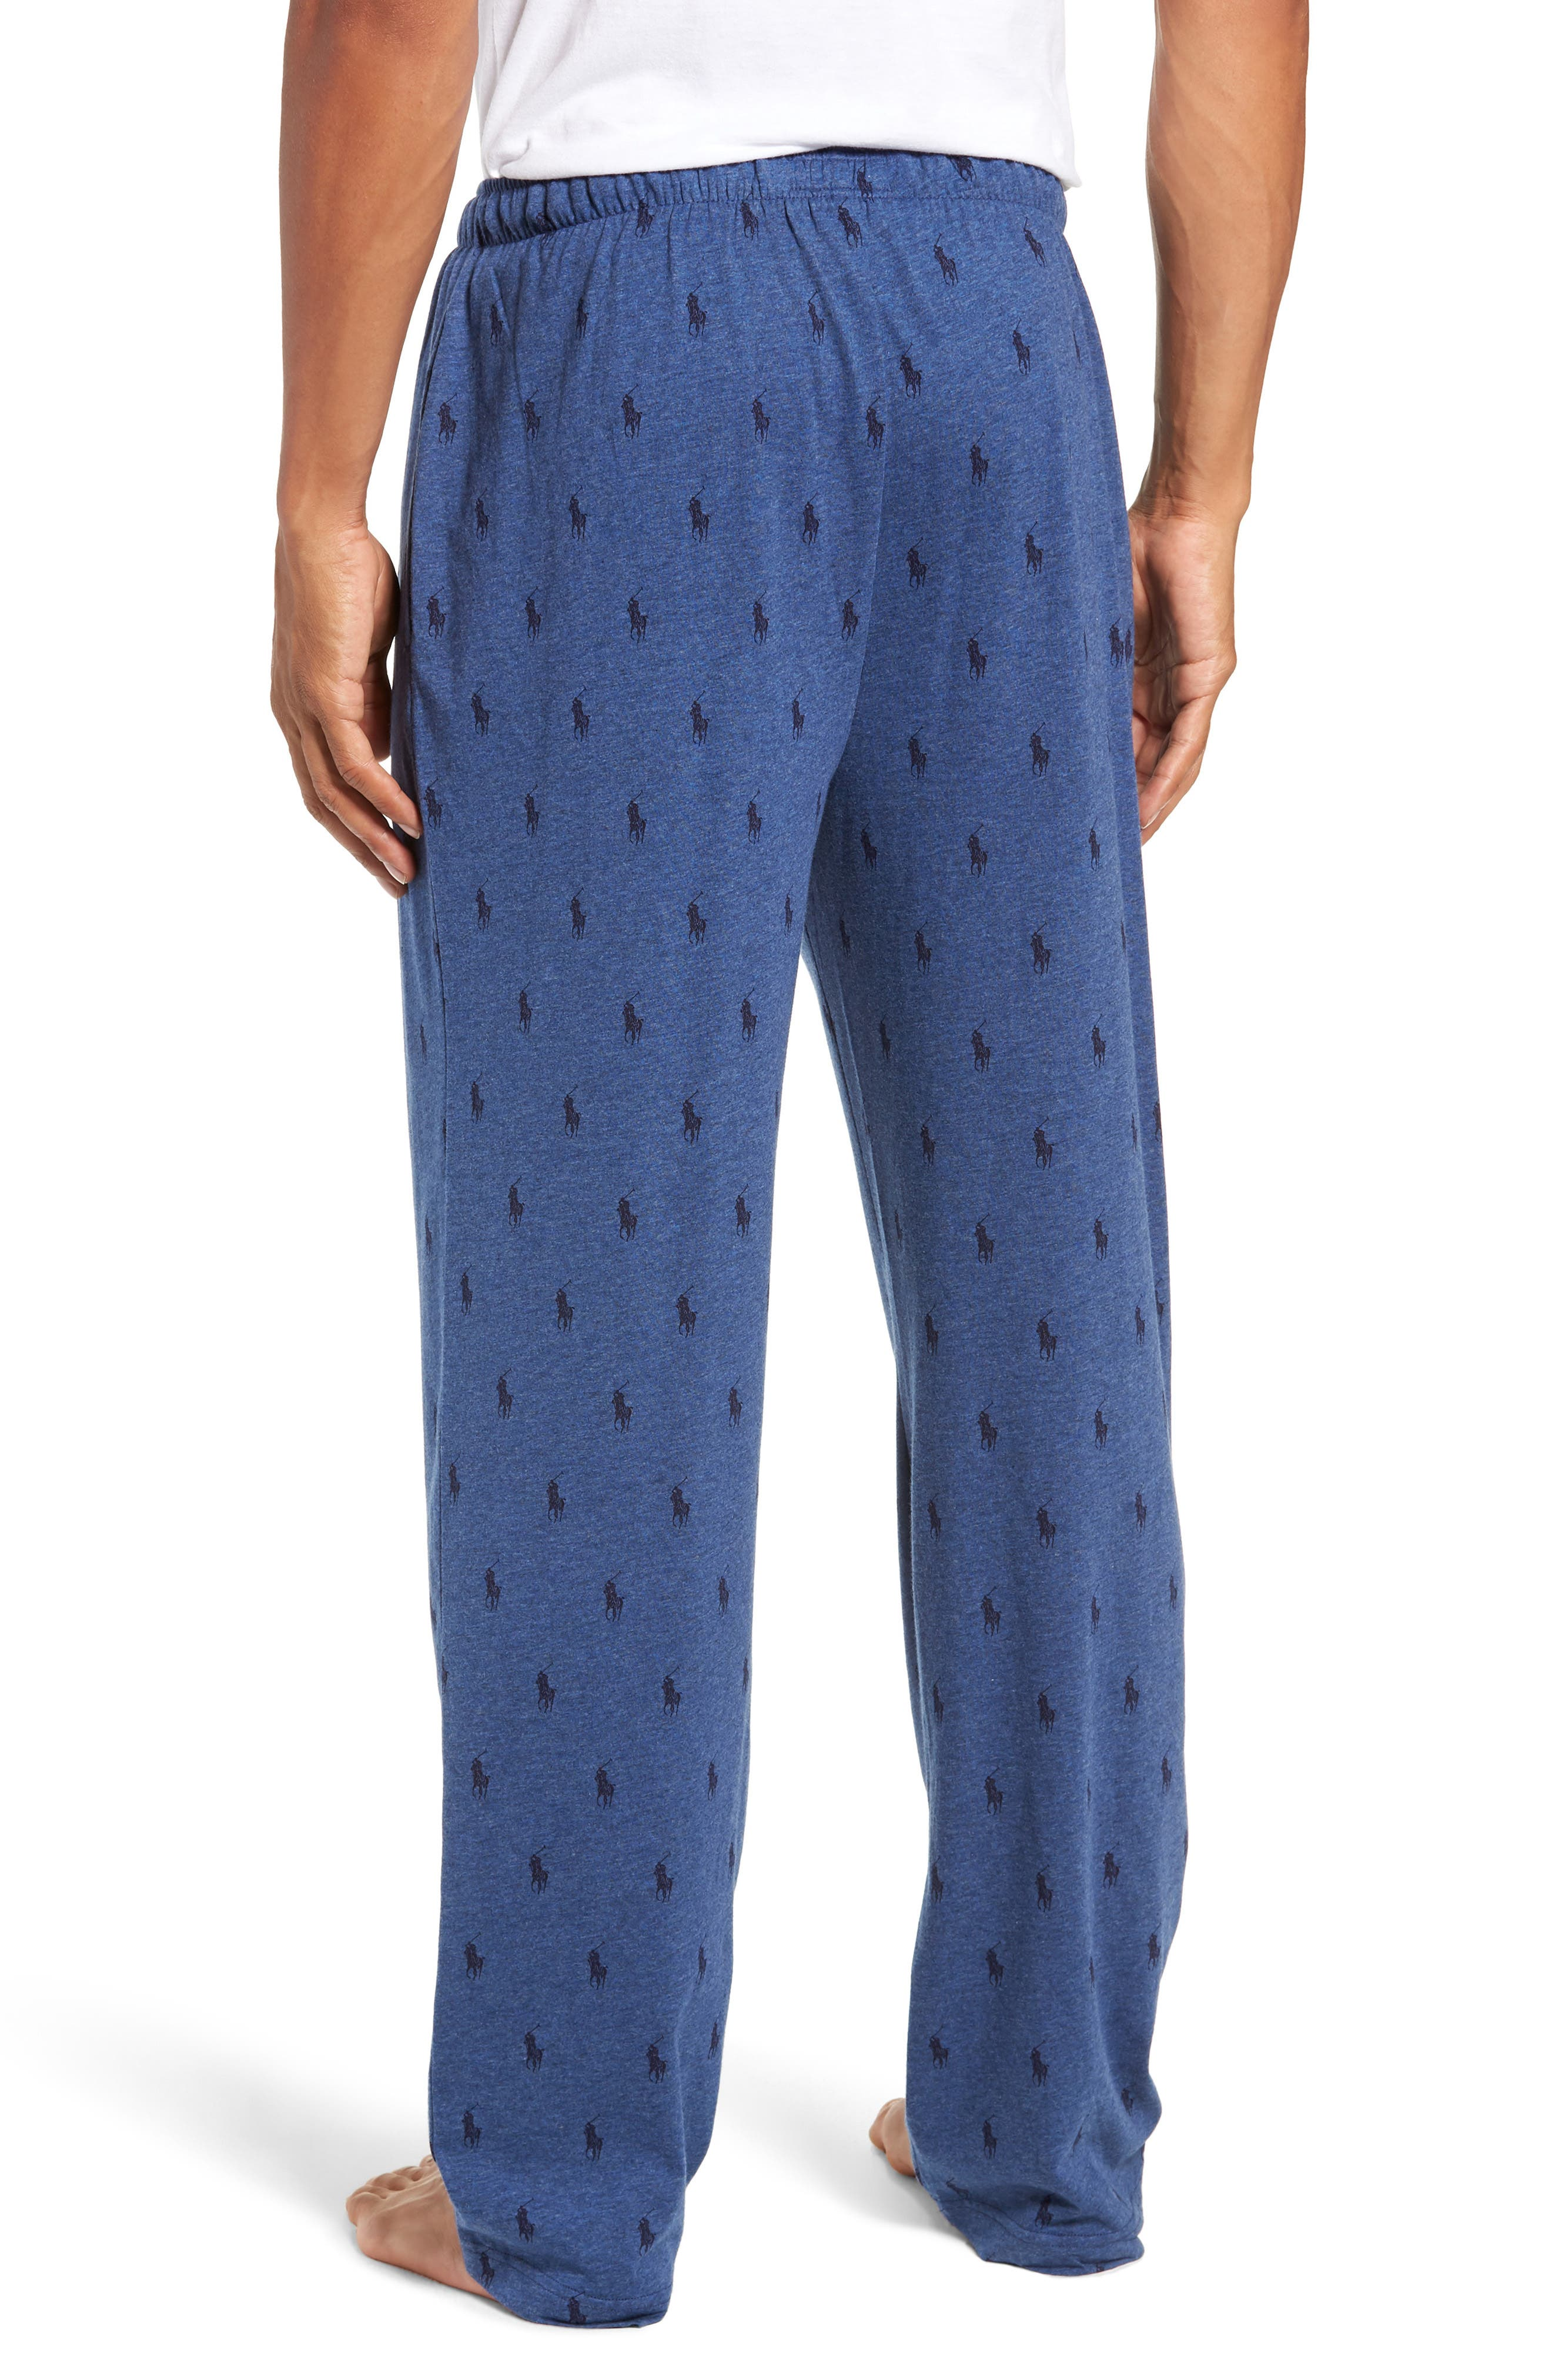 All Over Pony Lounge Pants,                             Alternate thumbnail 2, color,                             BLUE HEATHER/ CRUISE NAVY